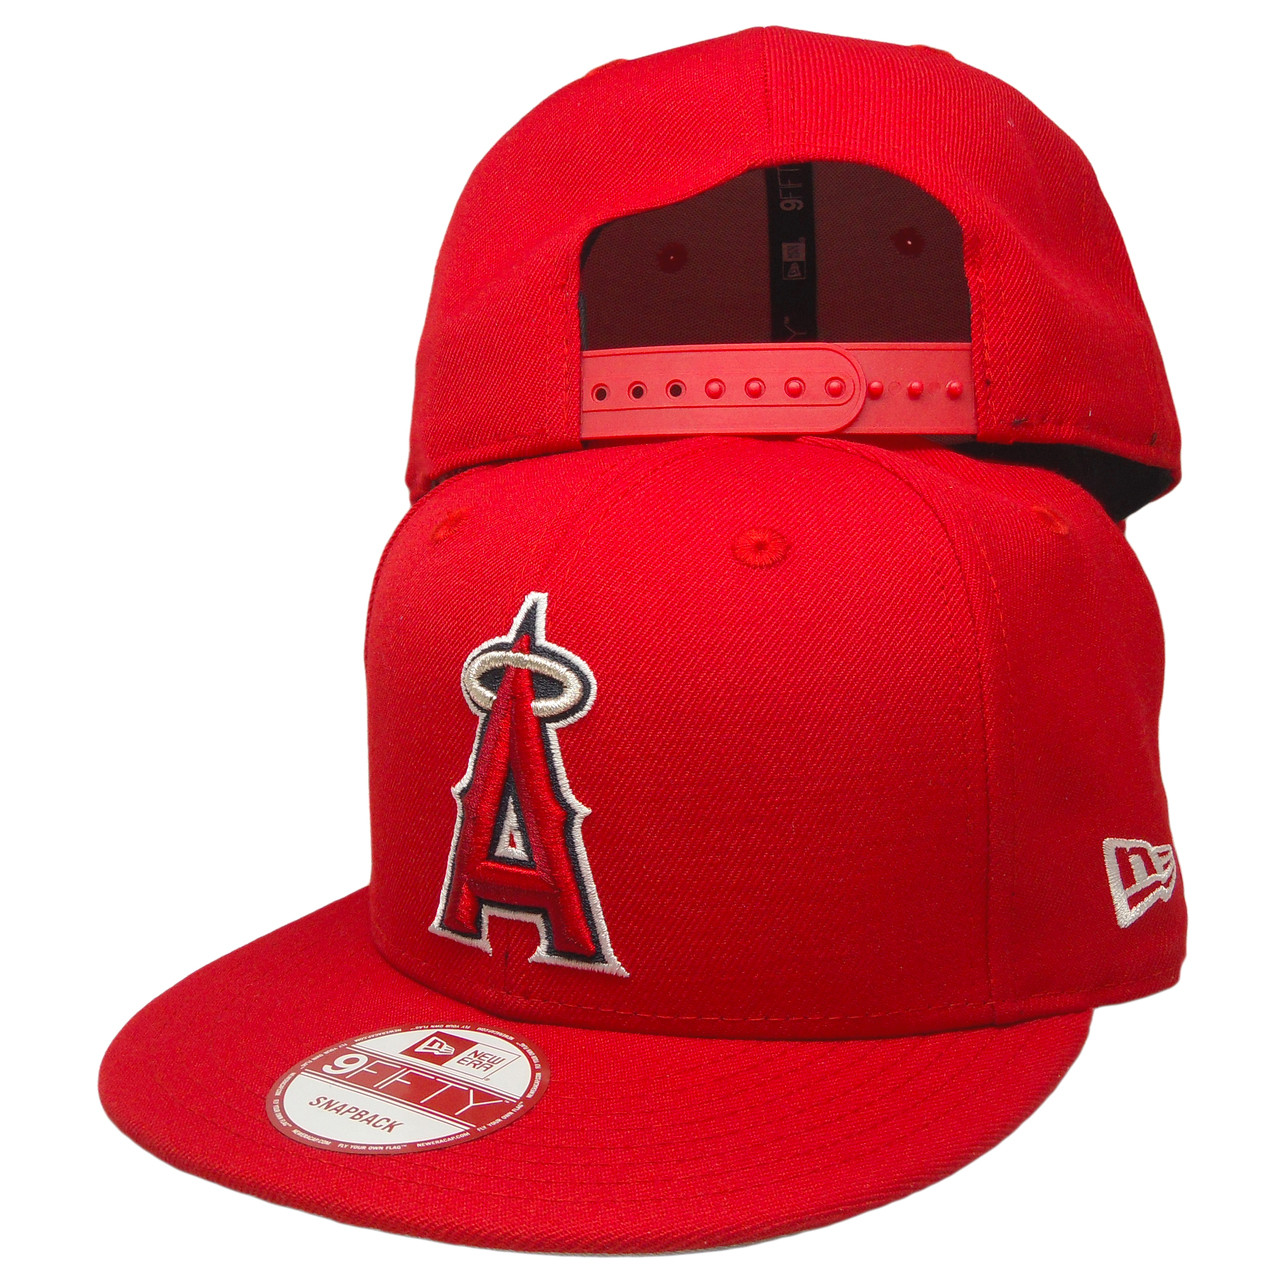 new product 43546 d0494 ... new zealand anaheim angels new era scarlet 1961 9fifty snapback red  silver navy white ea859 79f0a